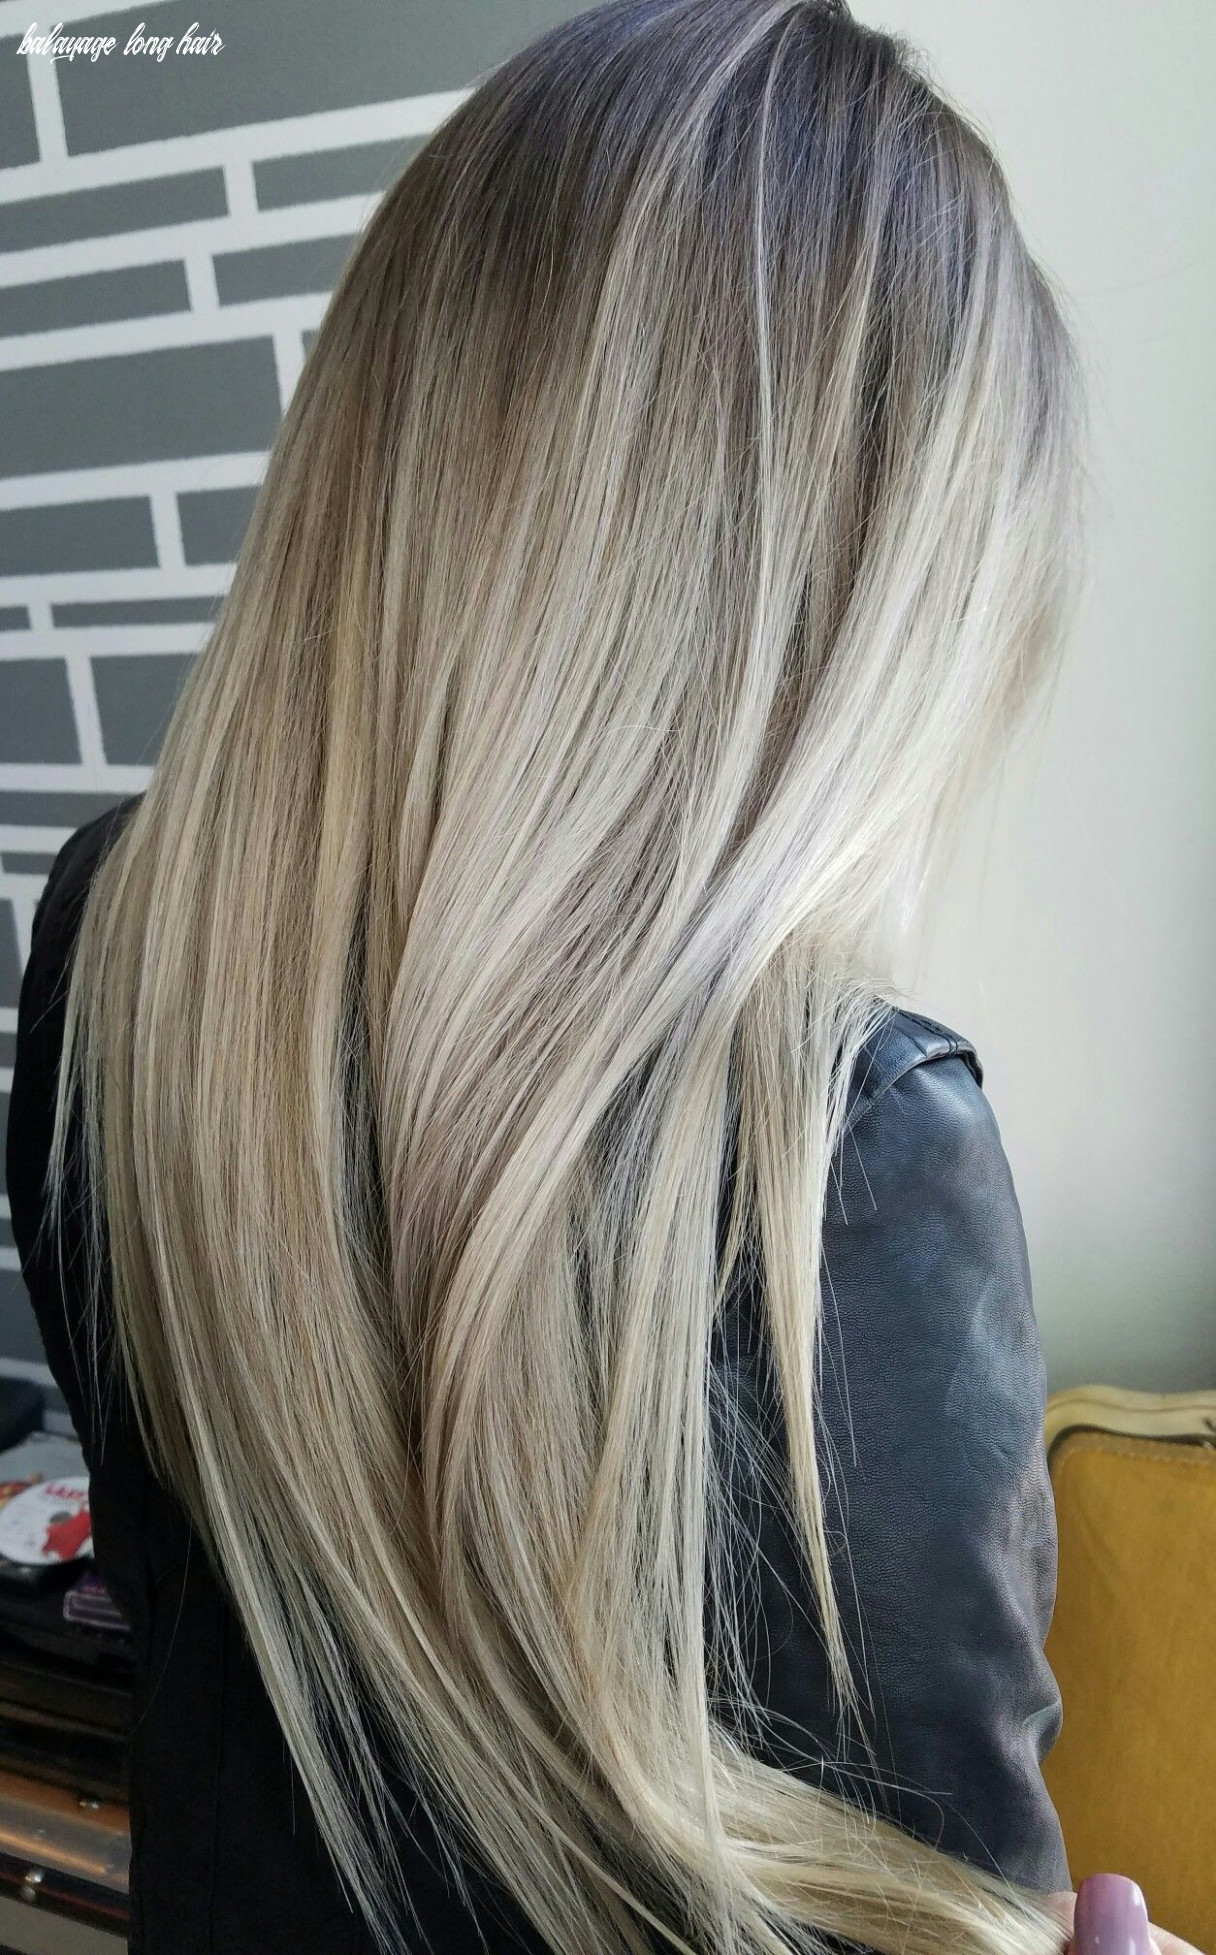 Blonde balayage long | balayage ombre using her natural dark